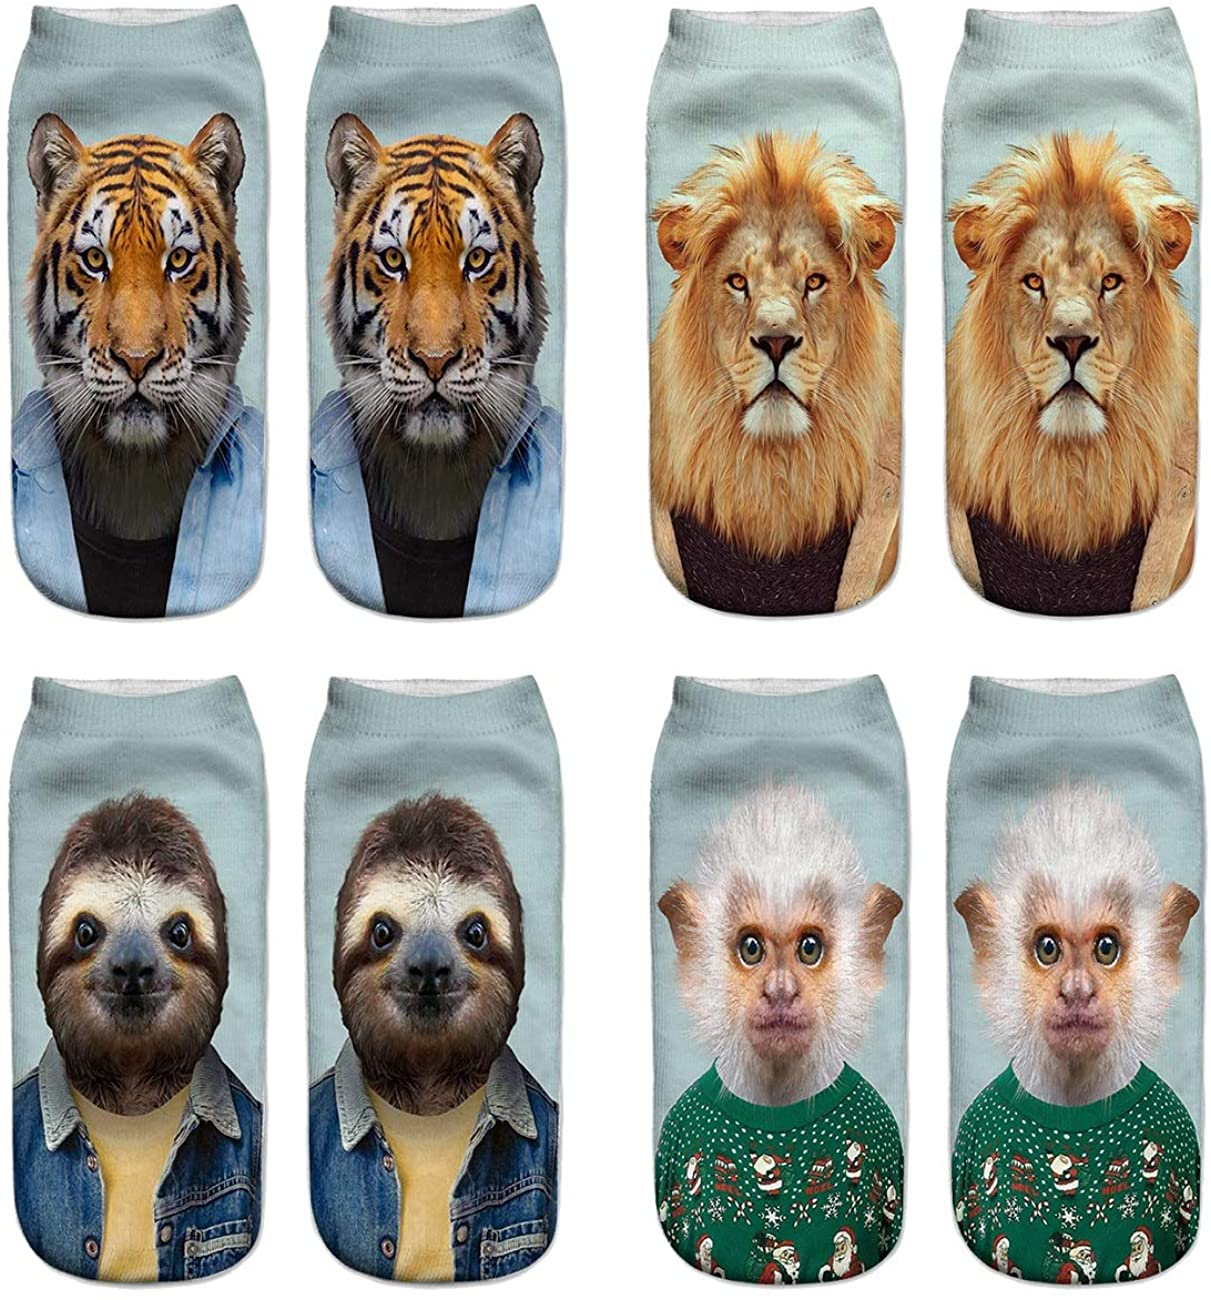 Womens Girls Funny Crazy Ankle Socks Fun Cute 3D Print Graphics Novelty Low Cut Liner Value Packs